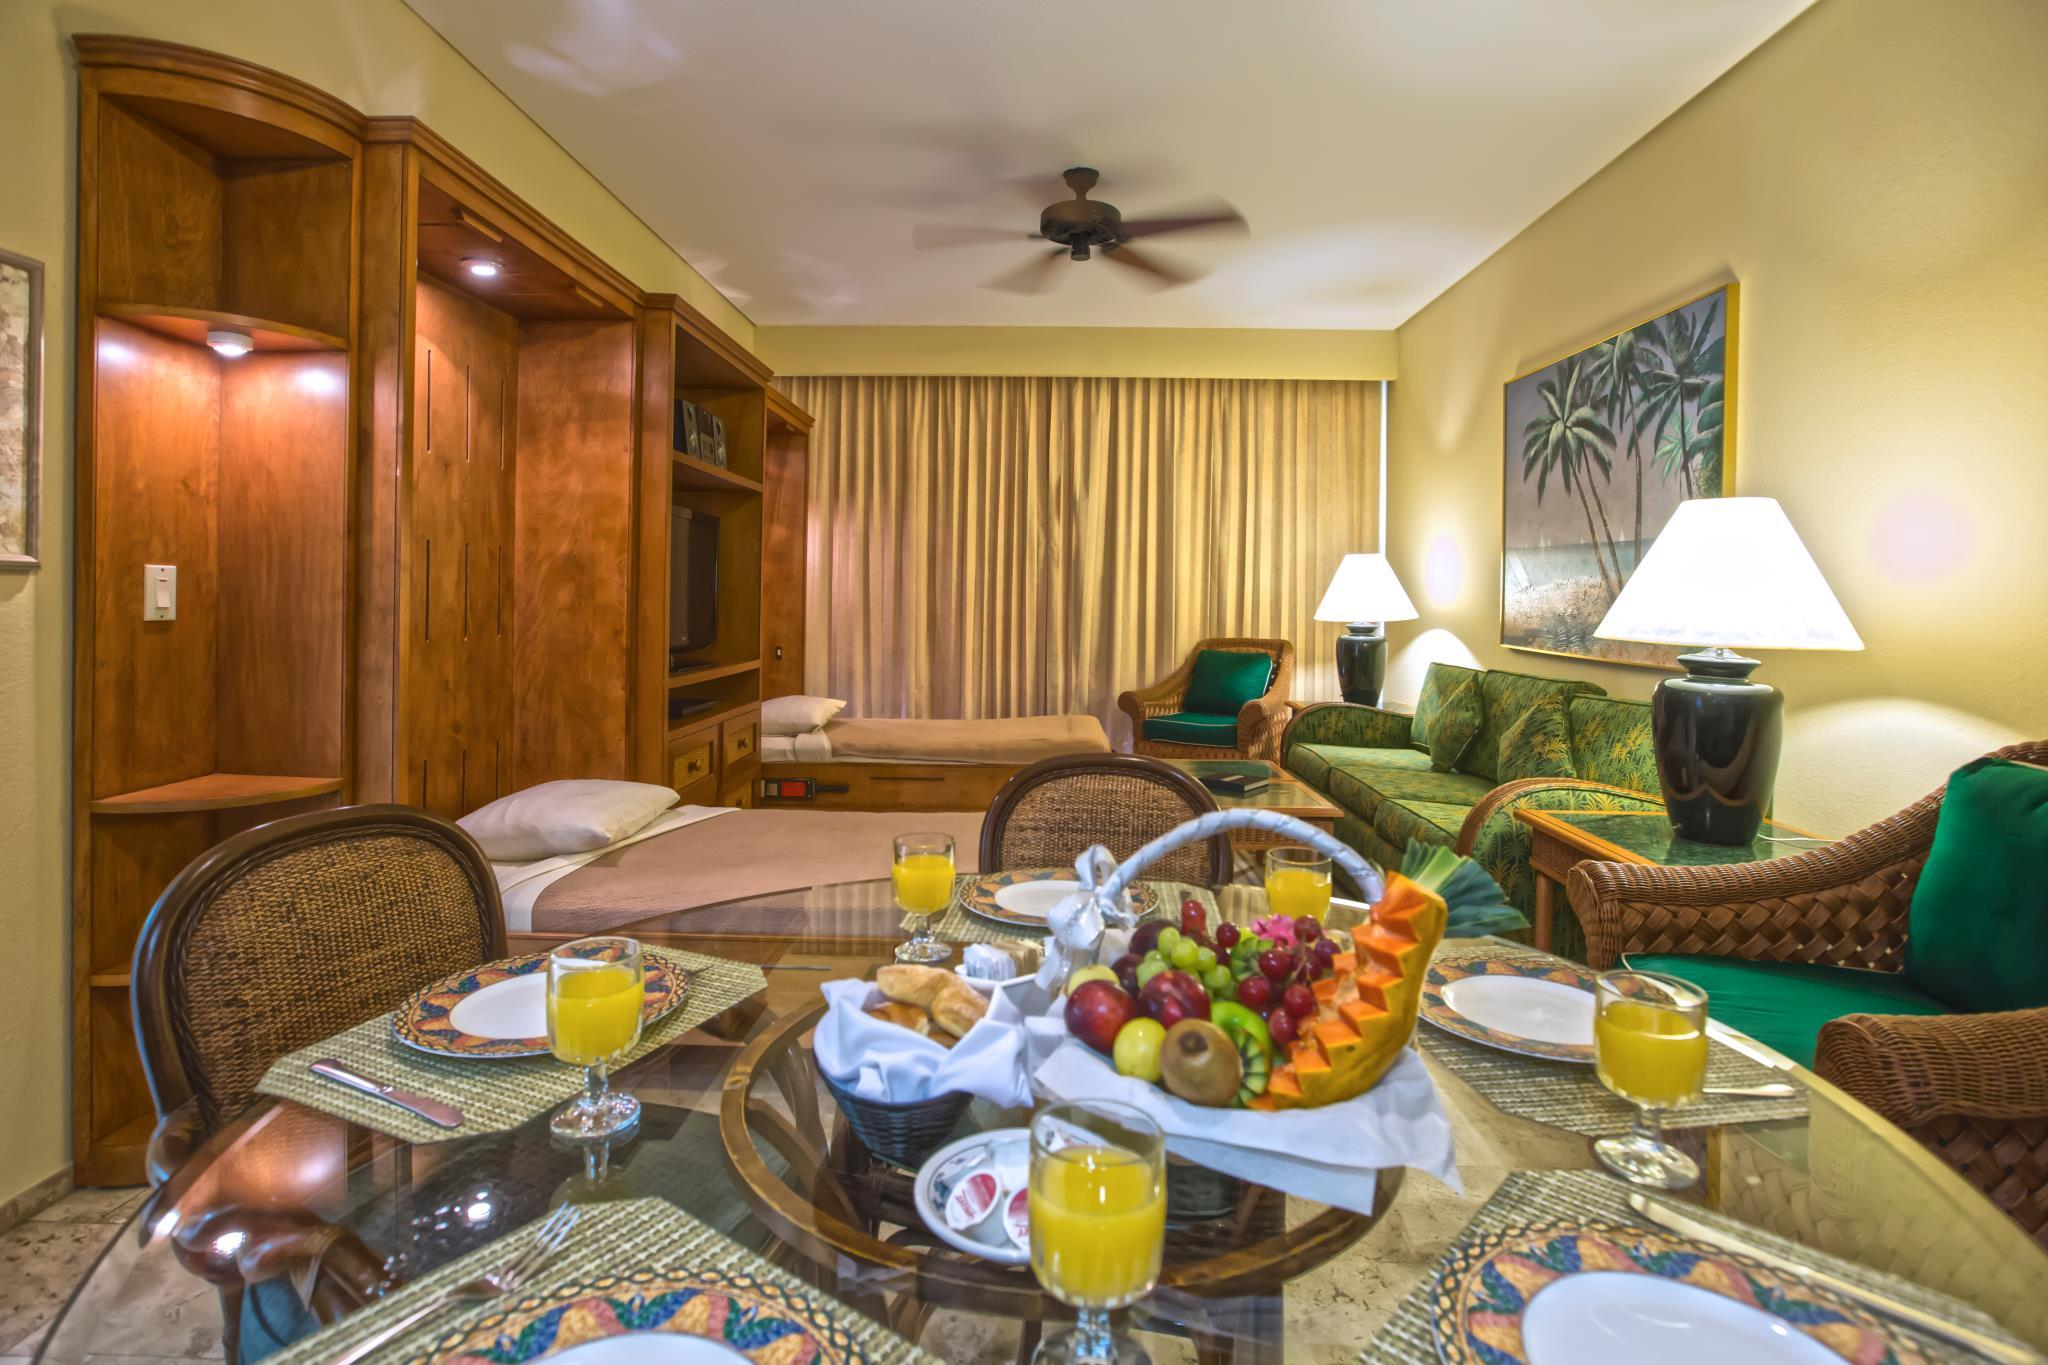 The royal sands all inclusive in cancun room deals - Cancun 2 bedroom suites all inclusive ...